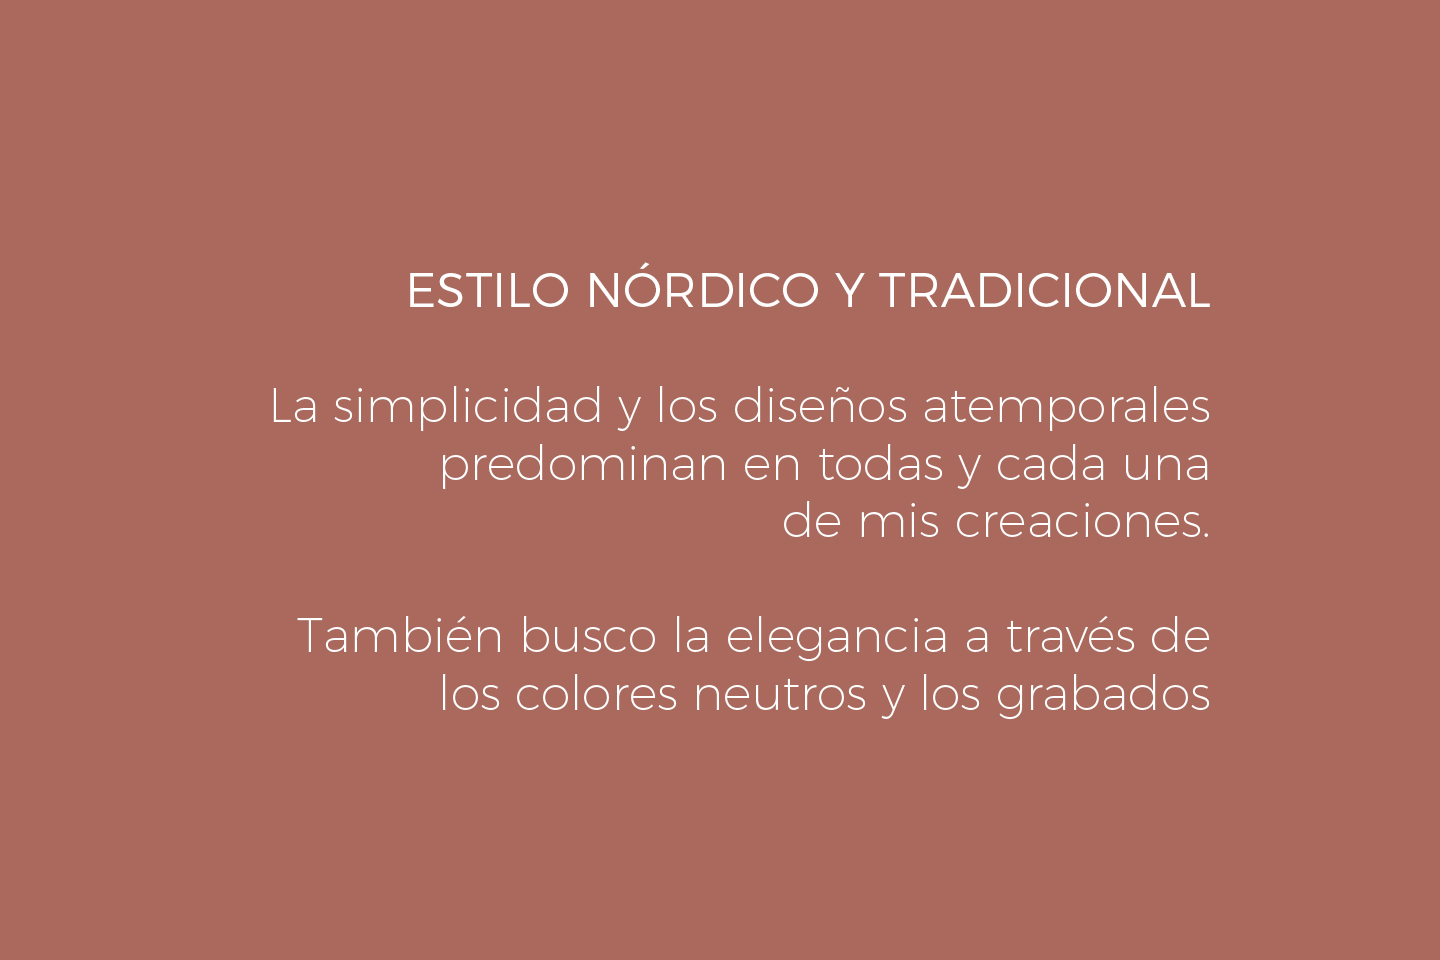 valor estilo nordico